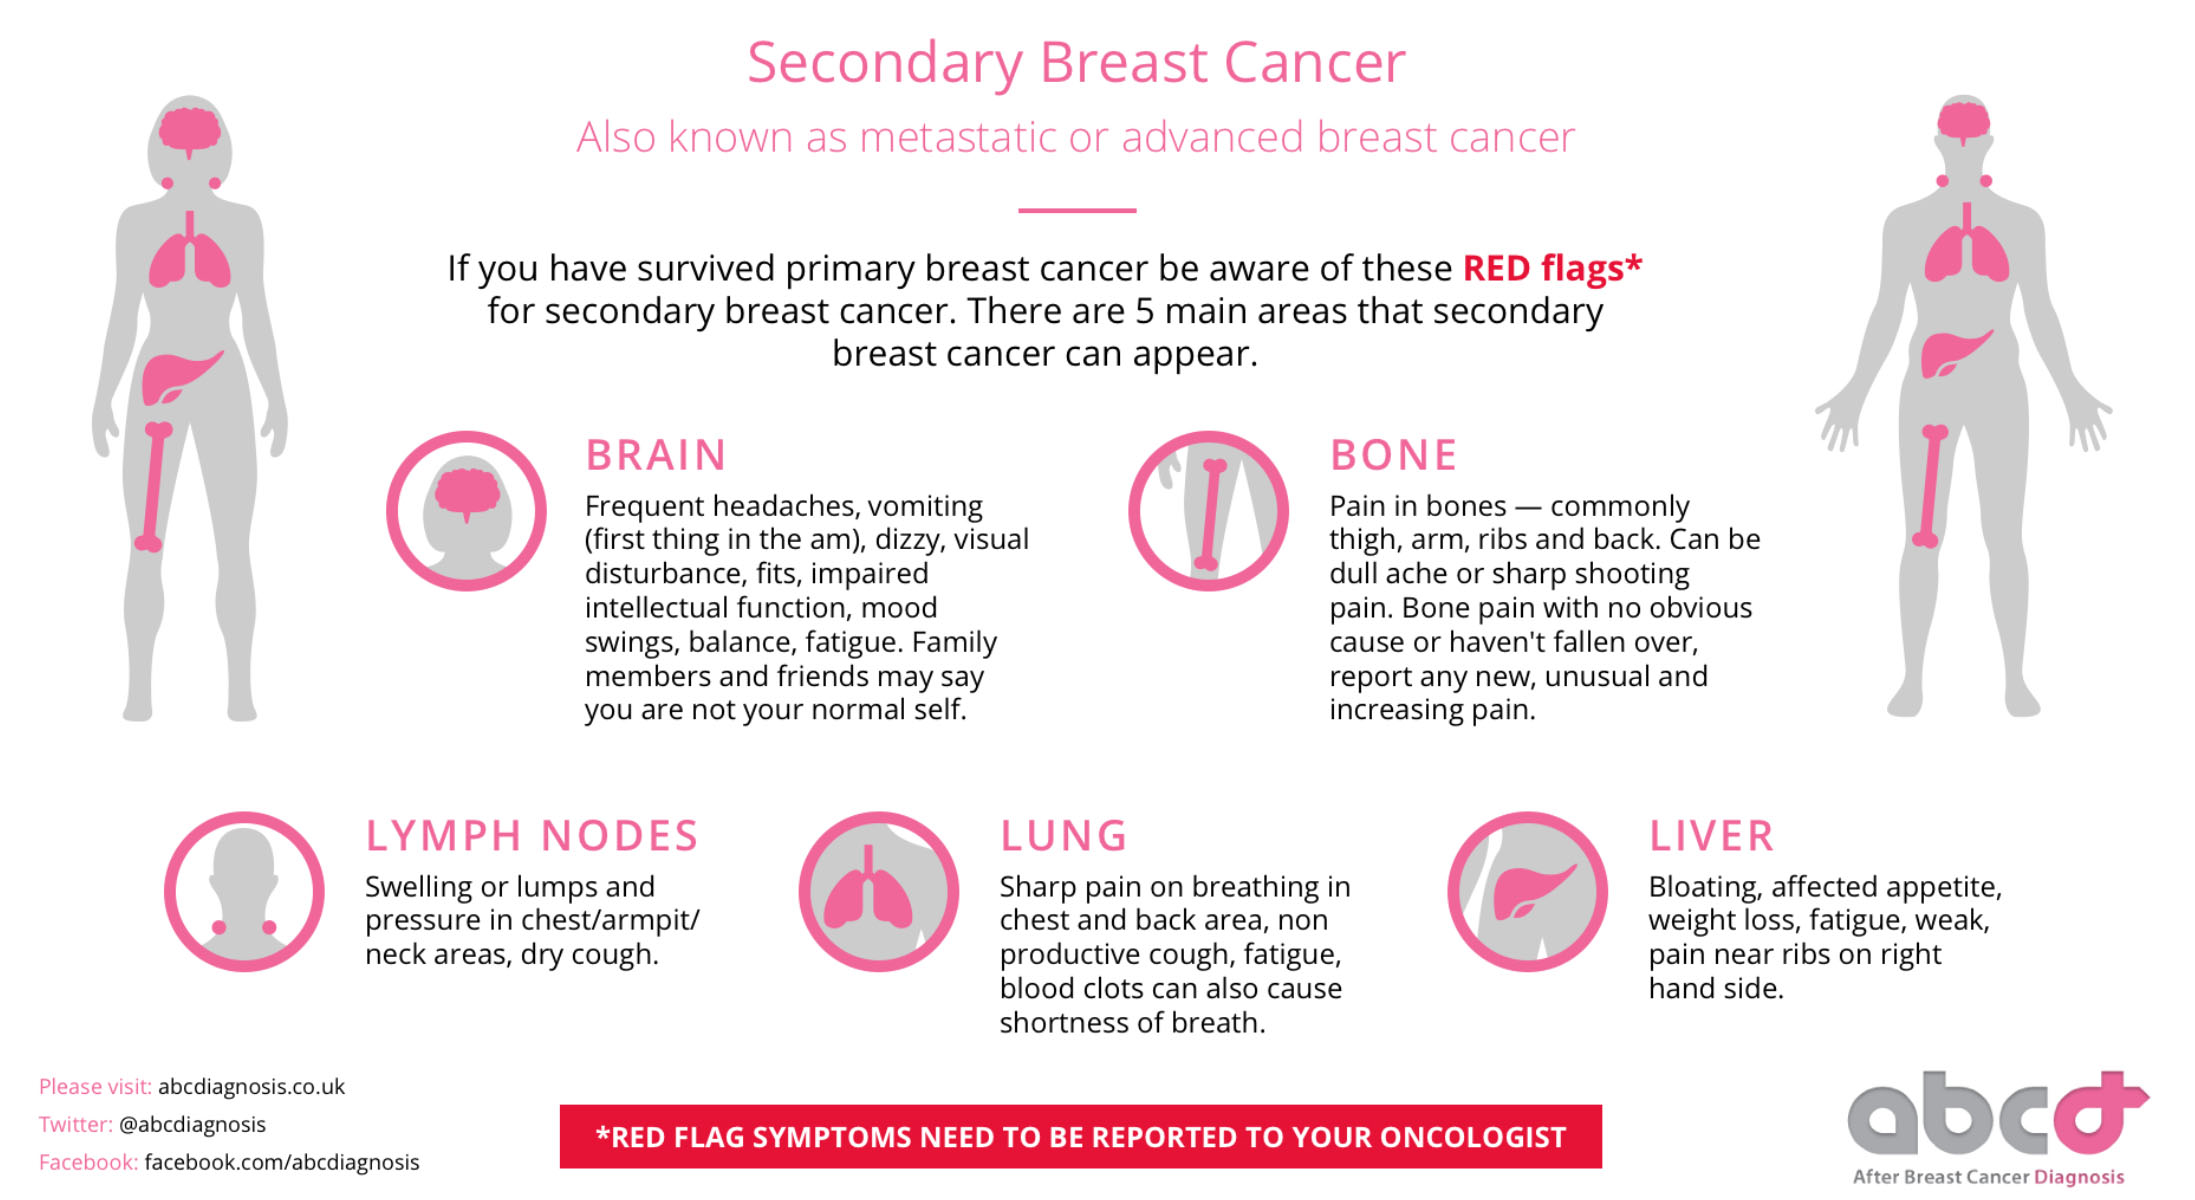 red flags for secondary breast cancer